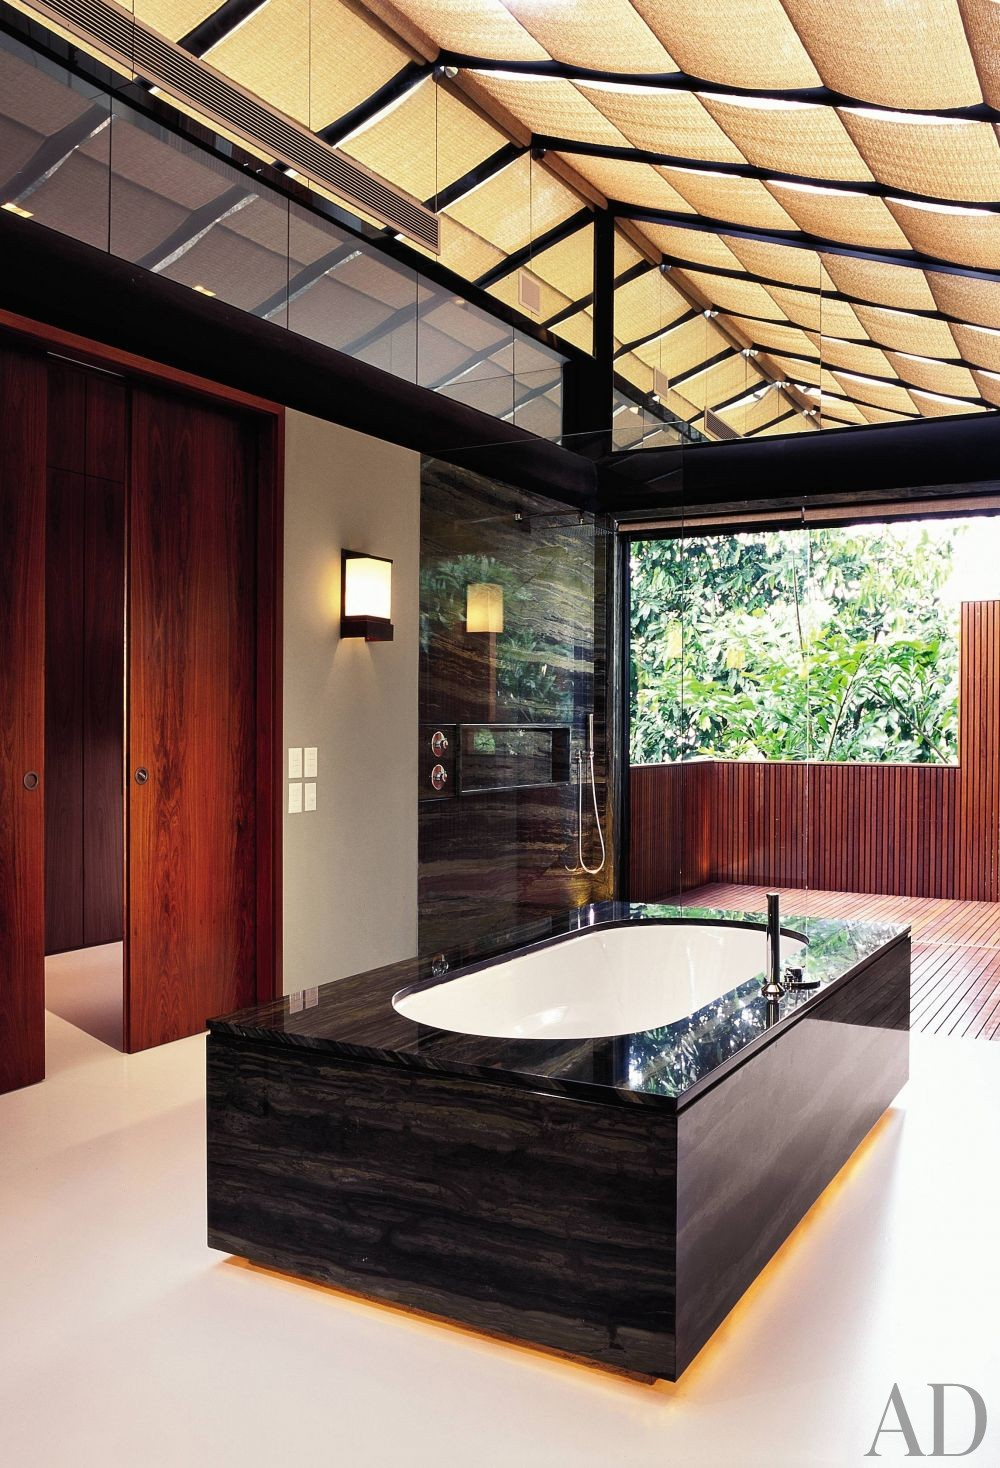 Exotic Bathroom by Mlinaric, Henry & Zervudachi and Luciano Pedrosa in Rio de Janeiro, Brazil